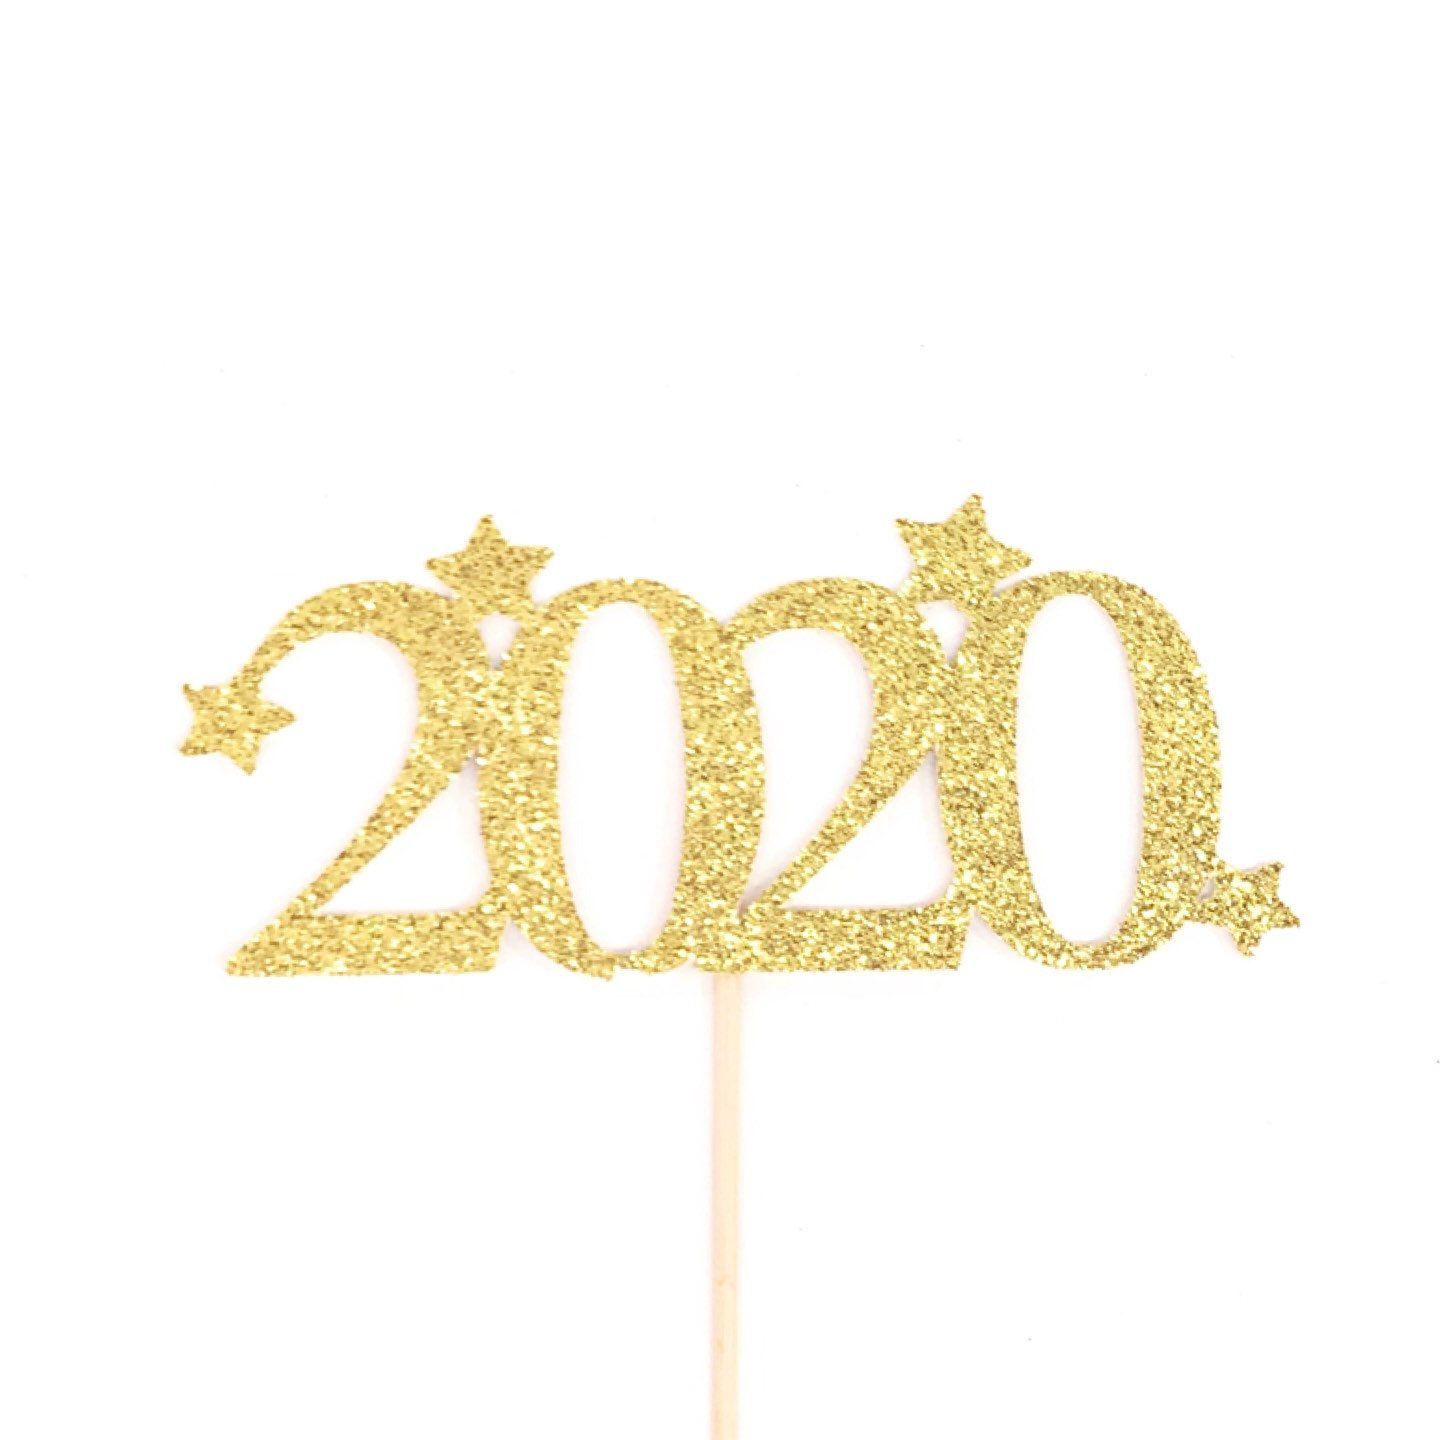 2020 Cake Topper, New Year Party Cake Topper, New Years